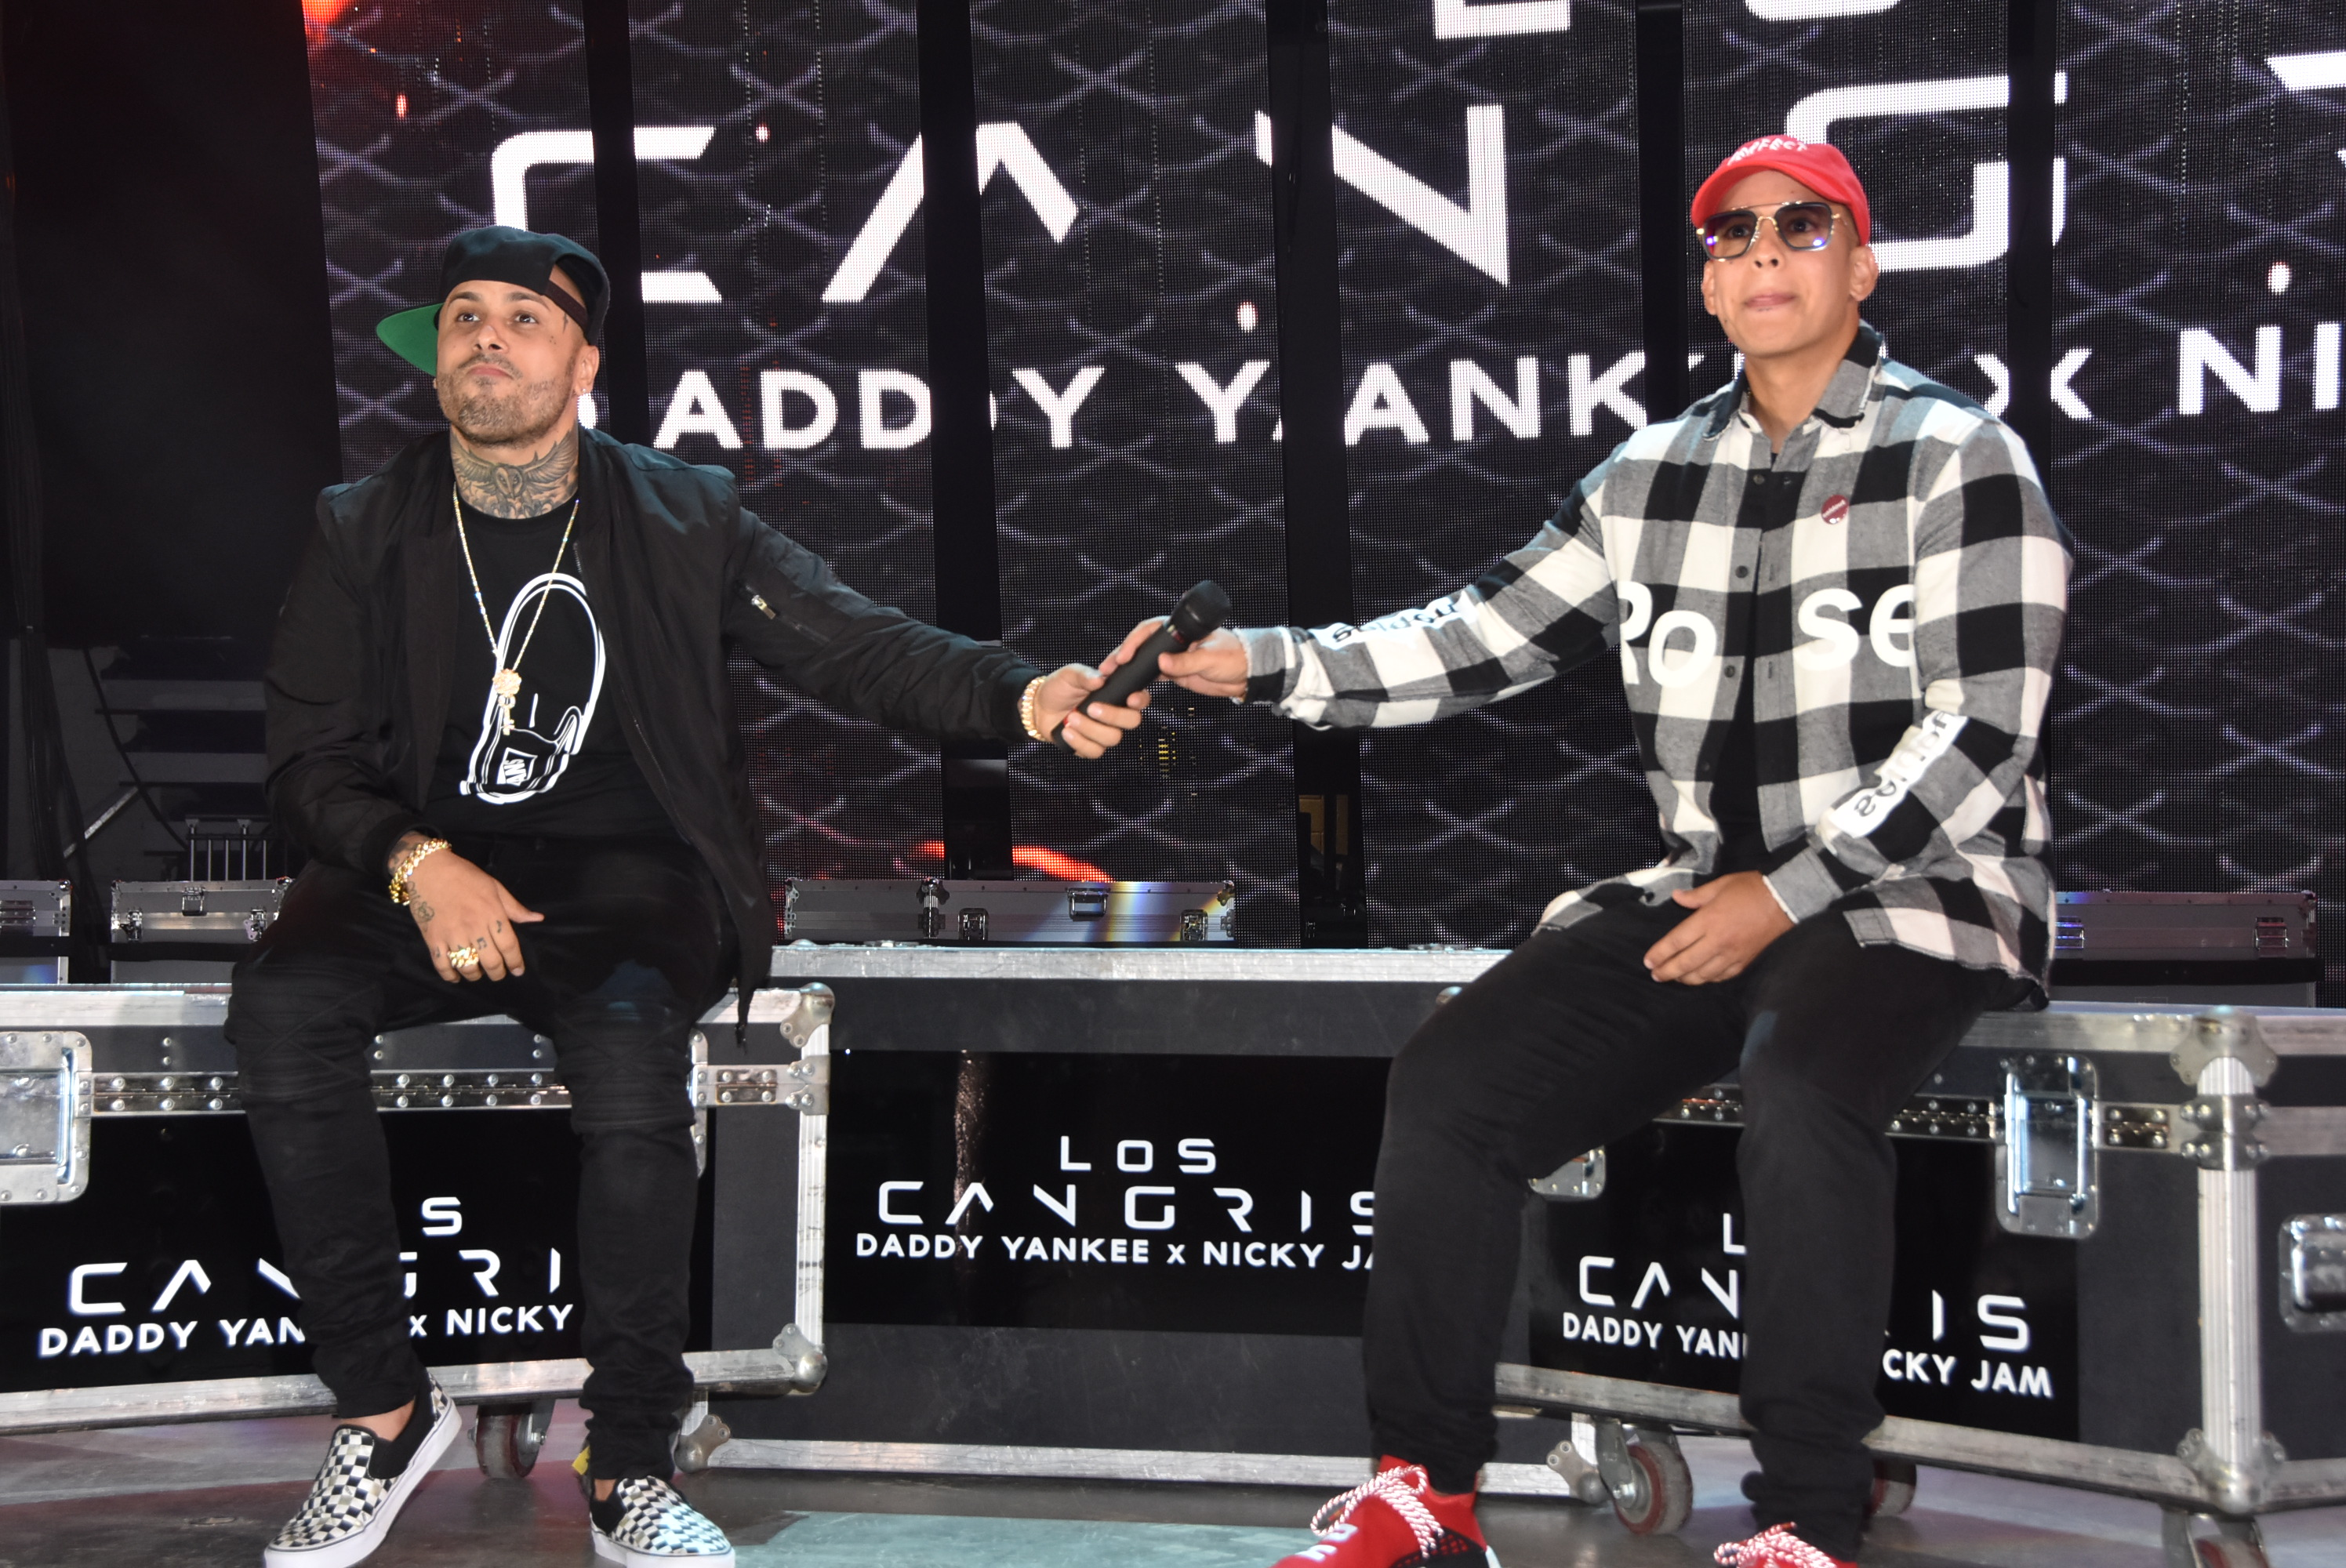 Nicky Jam, Daddy Yankee